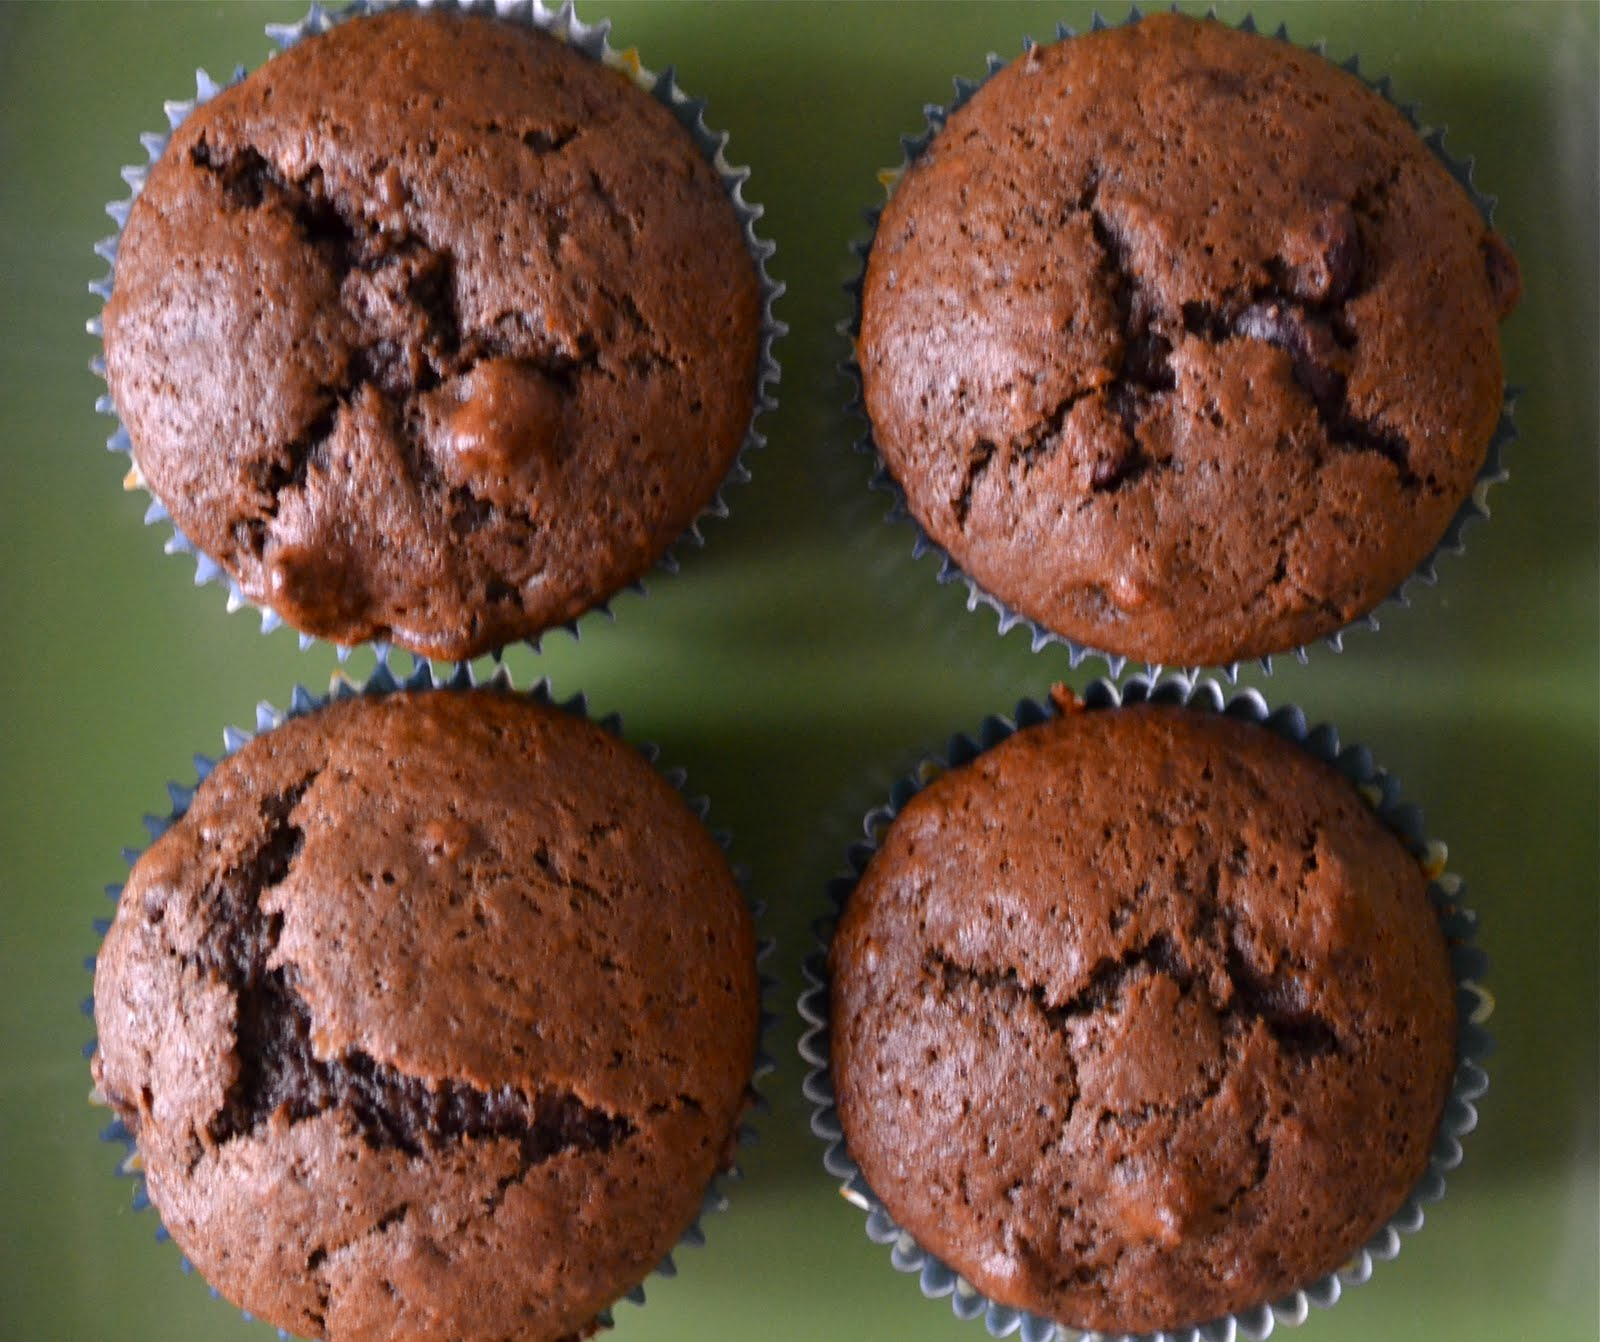 Double Chocolate Banana Muffins - A Dash of Megnut